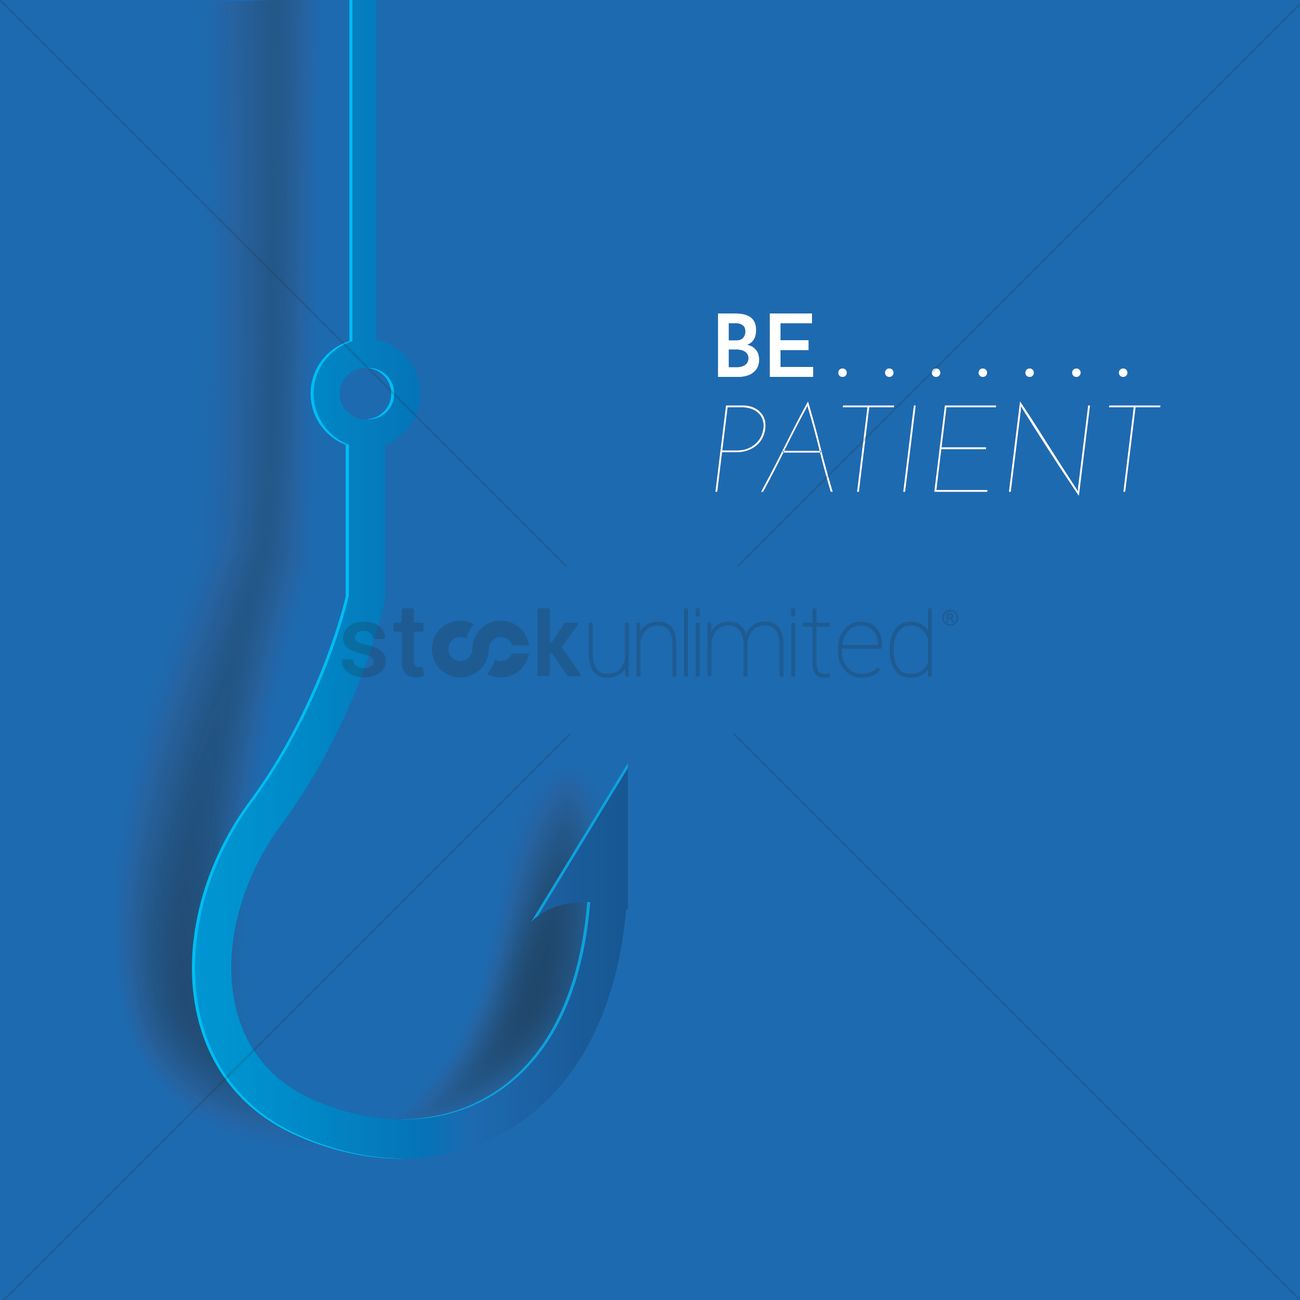 Patience motivational quote Vector Image - 1812039